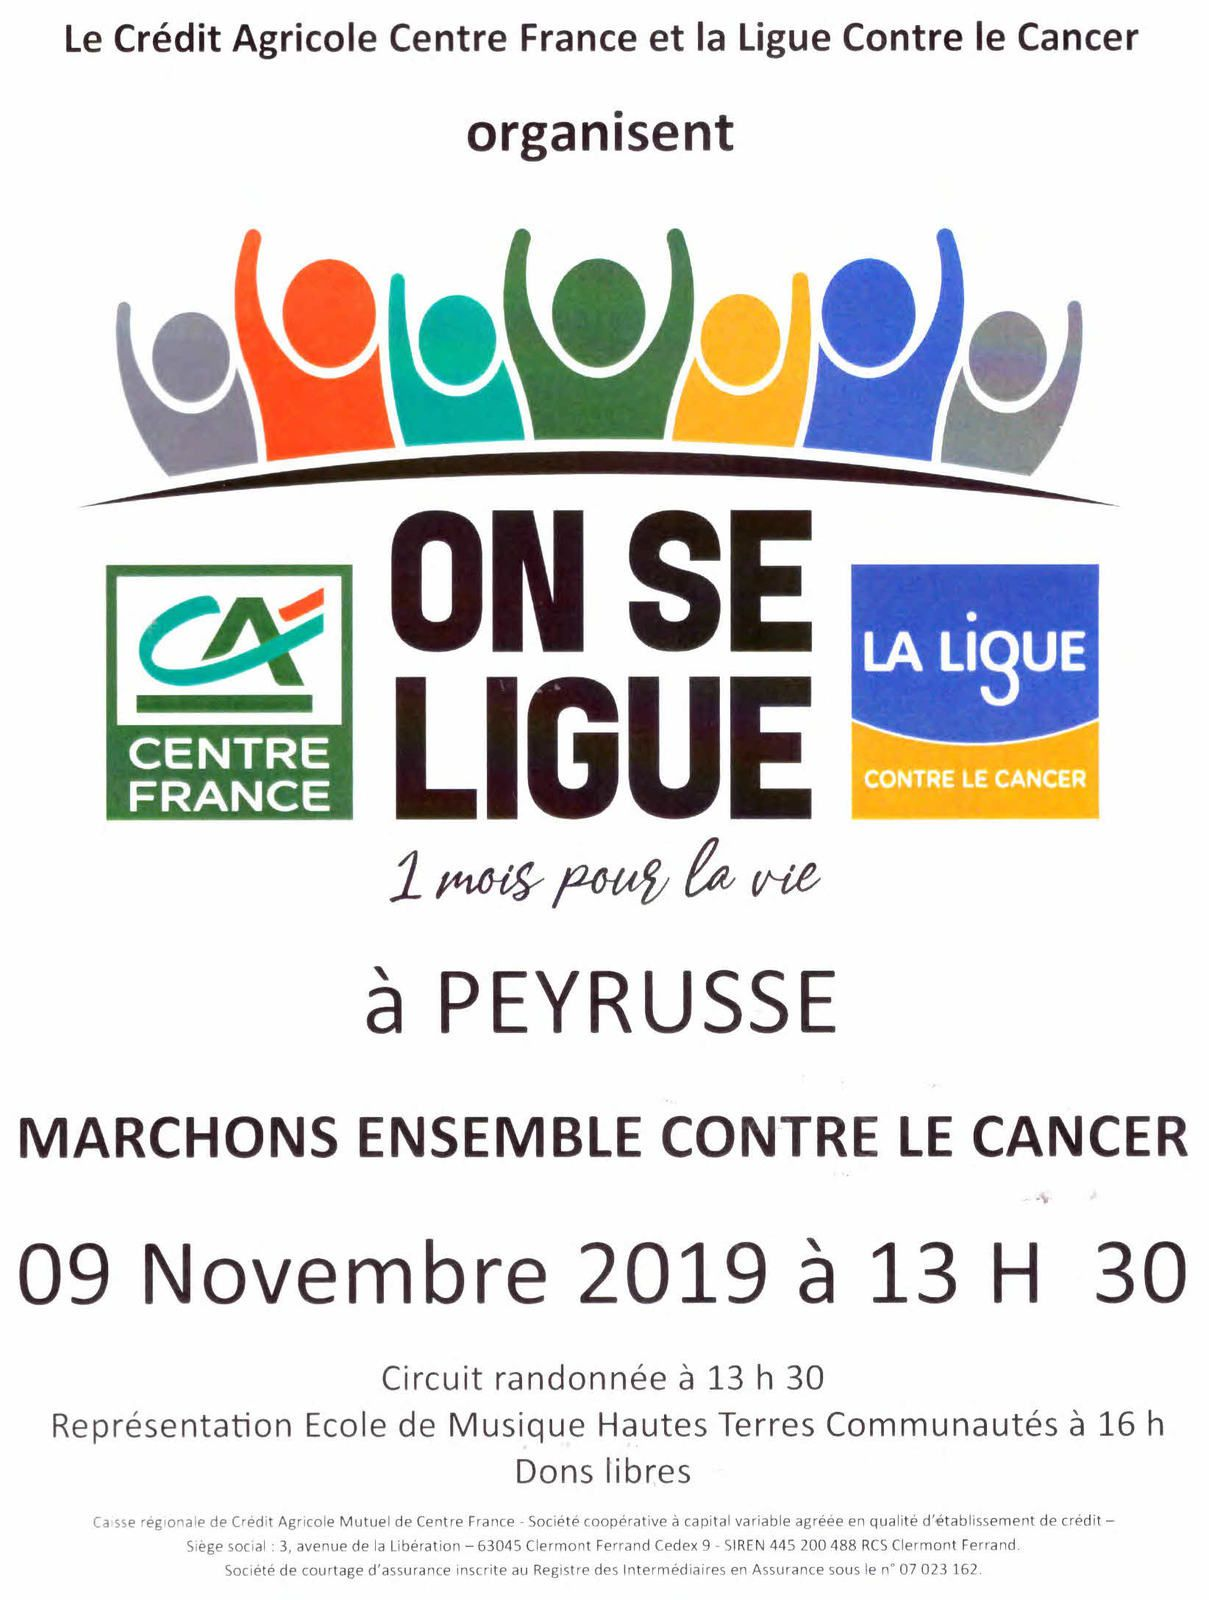 Peyrusse : marche contre le cancer